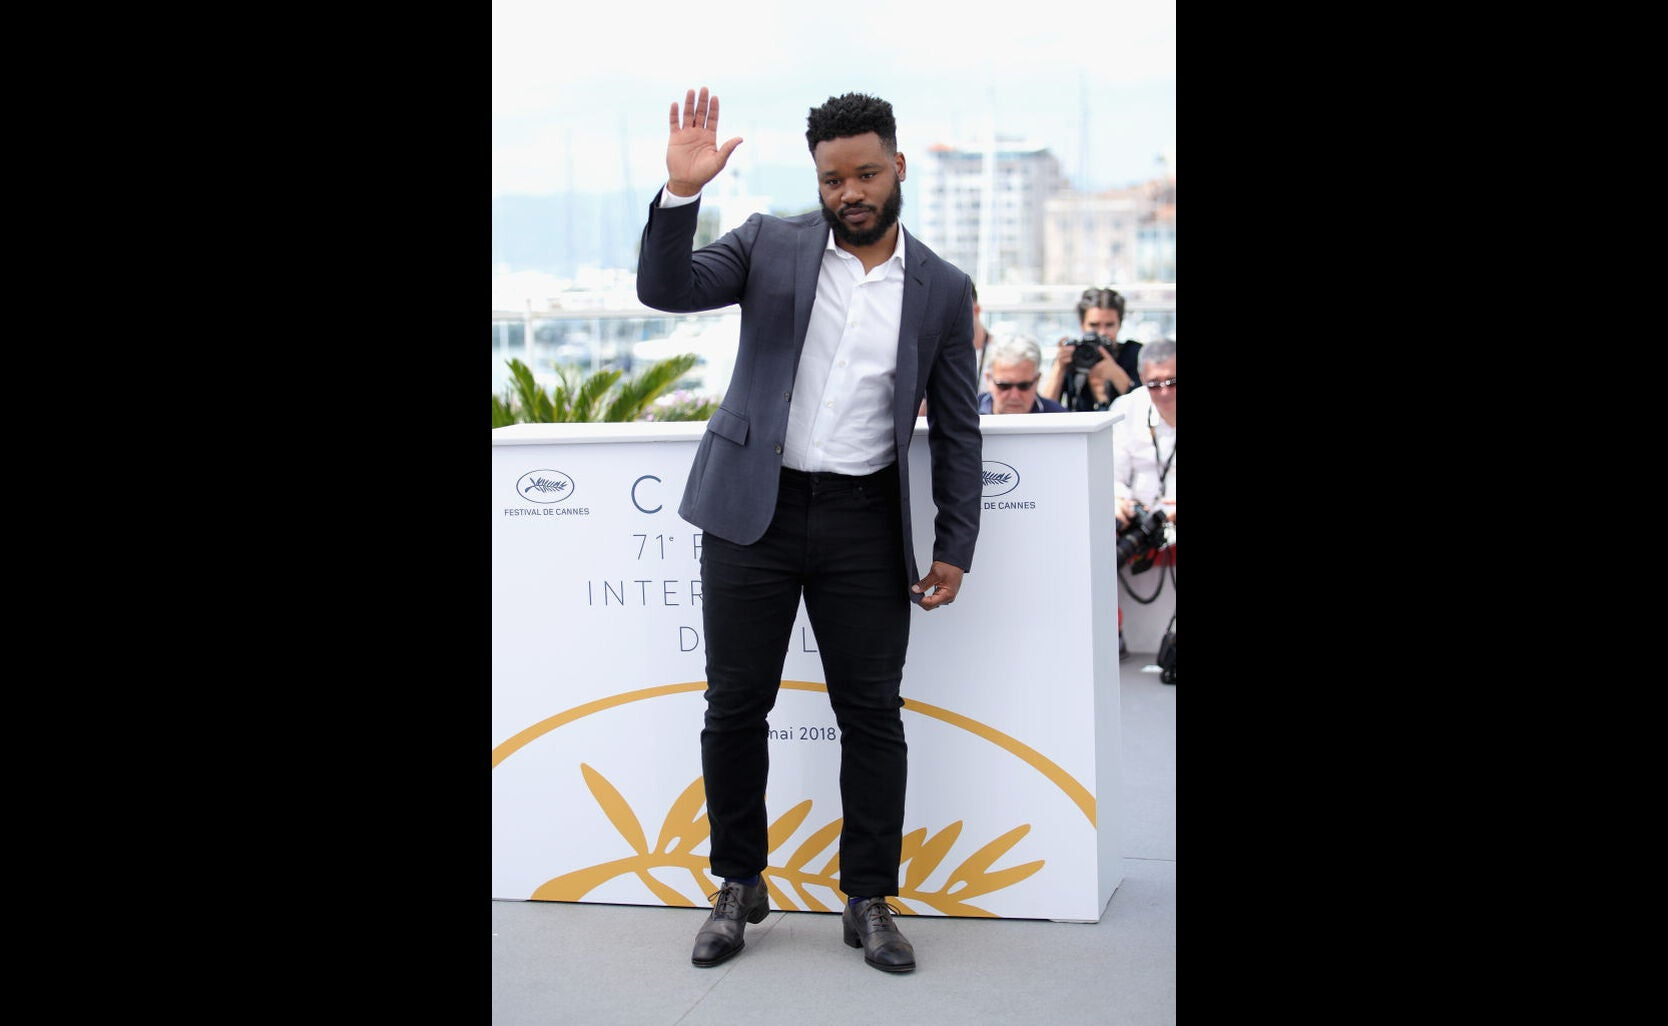 Filmmaker Ryan Coogler in Cannes 2018